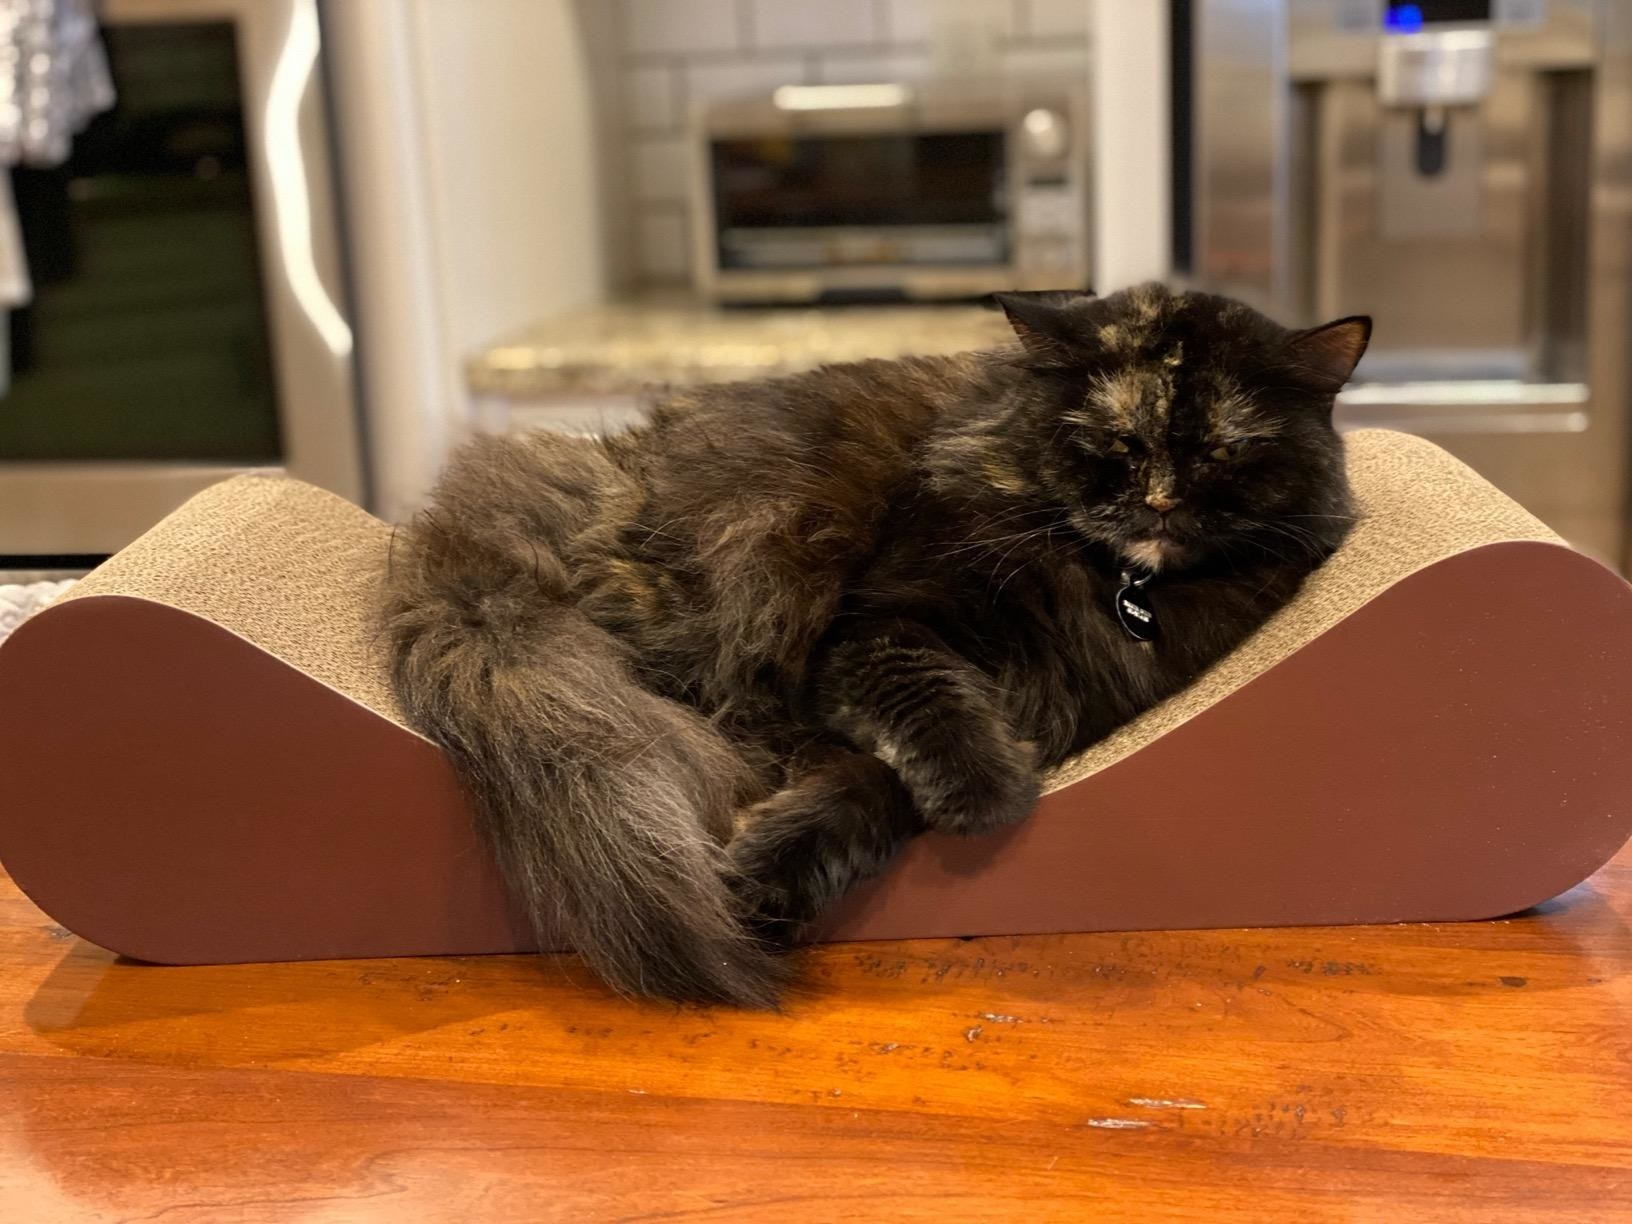 A cat rests on the scratcher, which has rounded ends and dips in the middle, like a backless couch